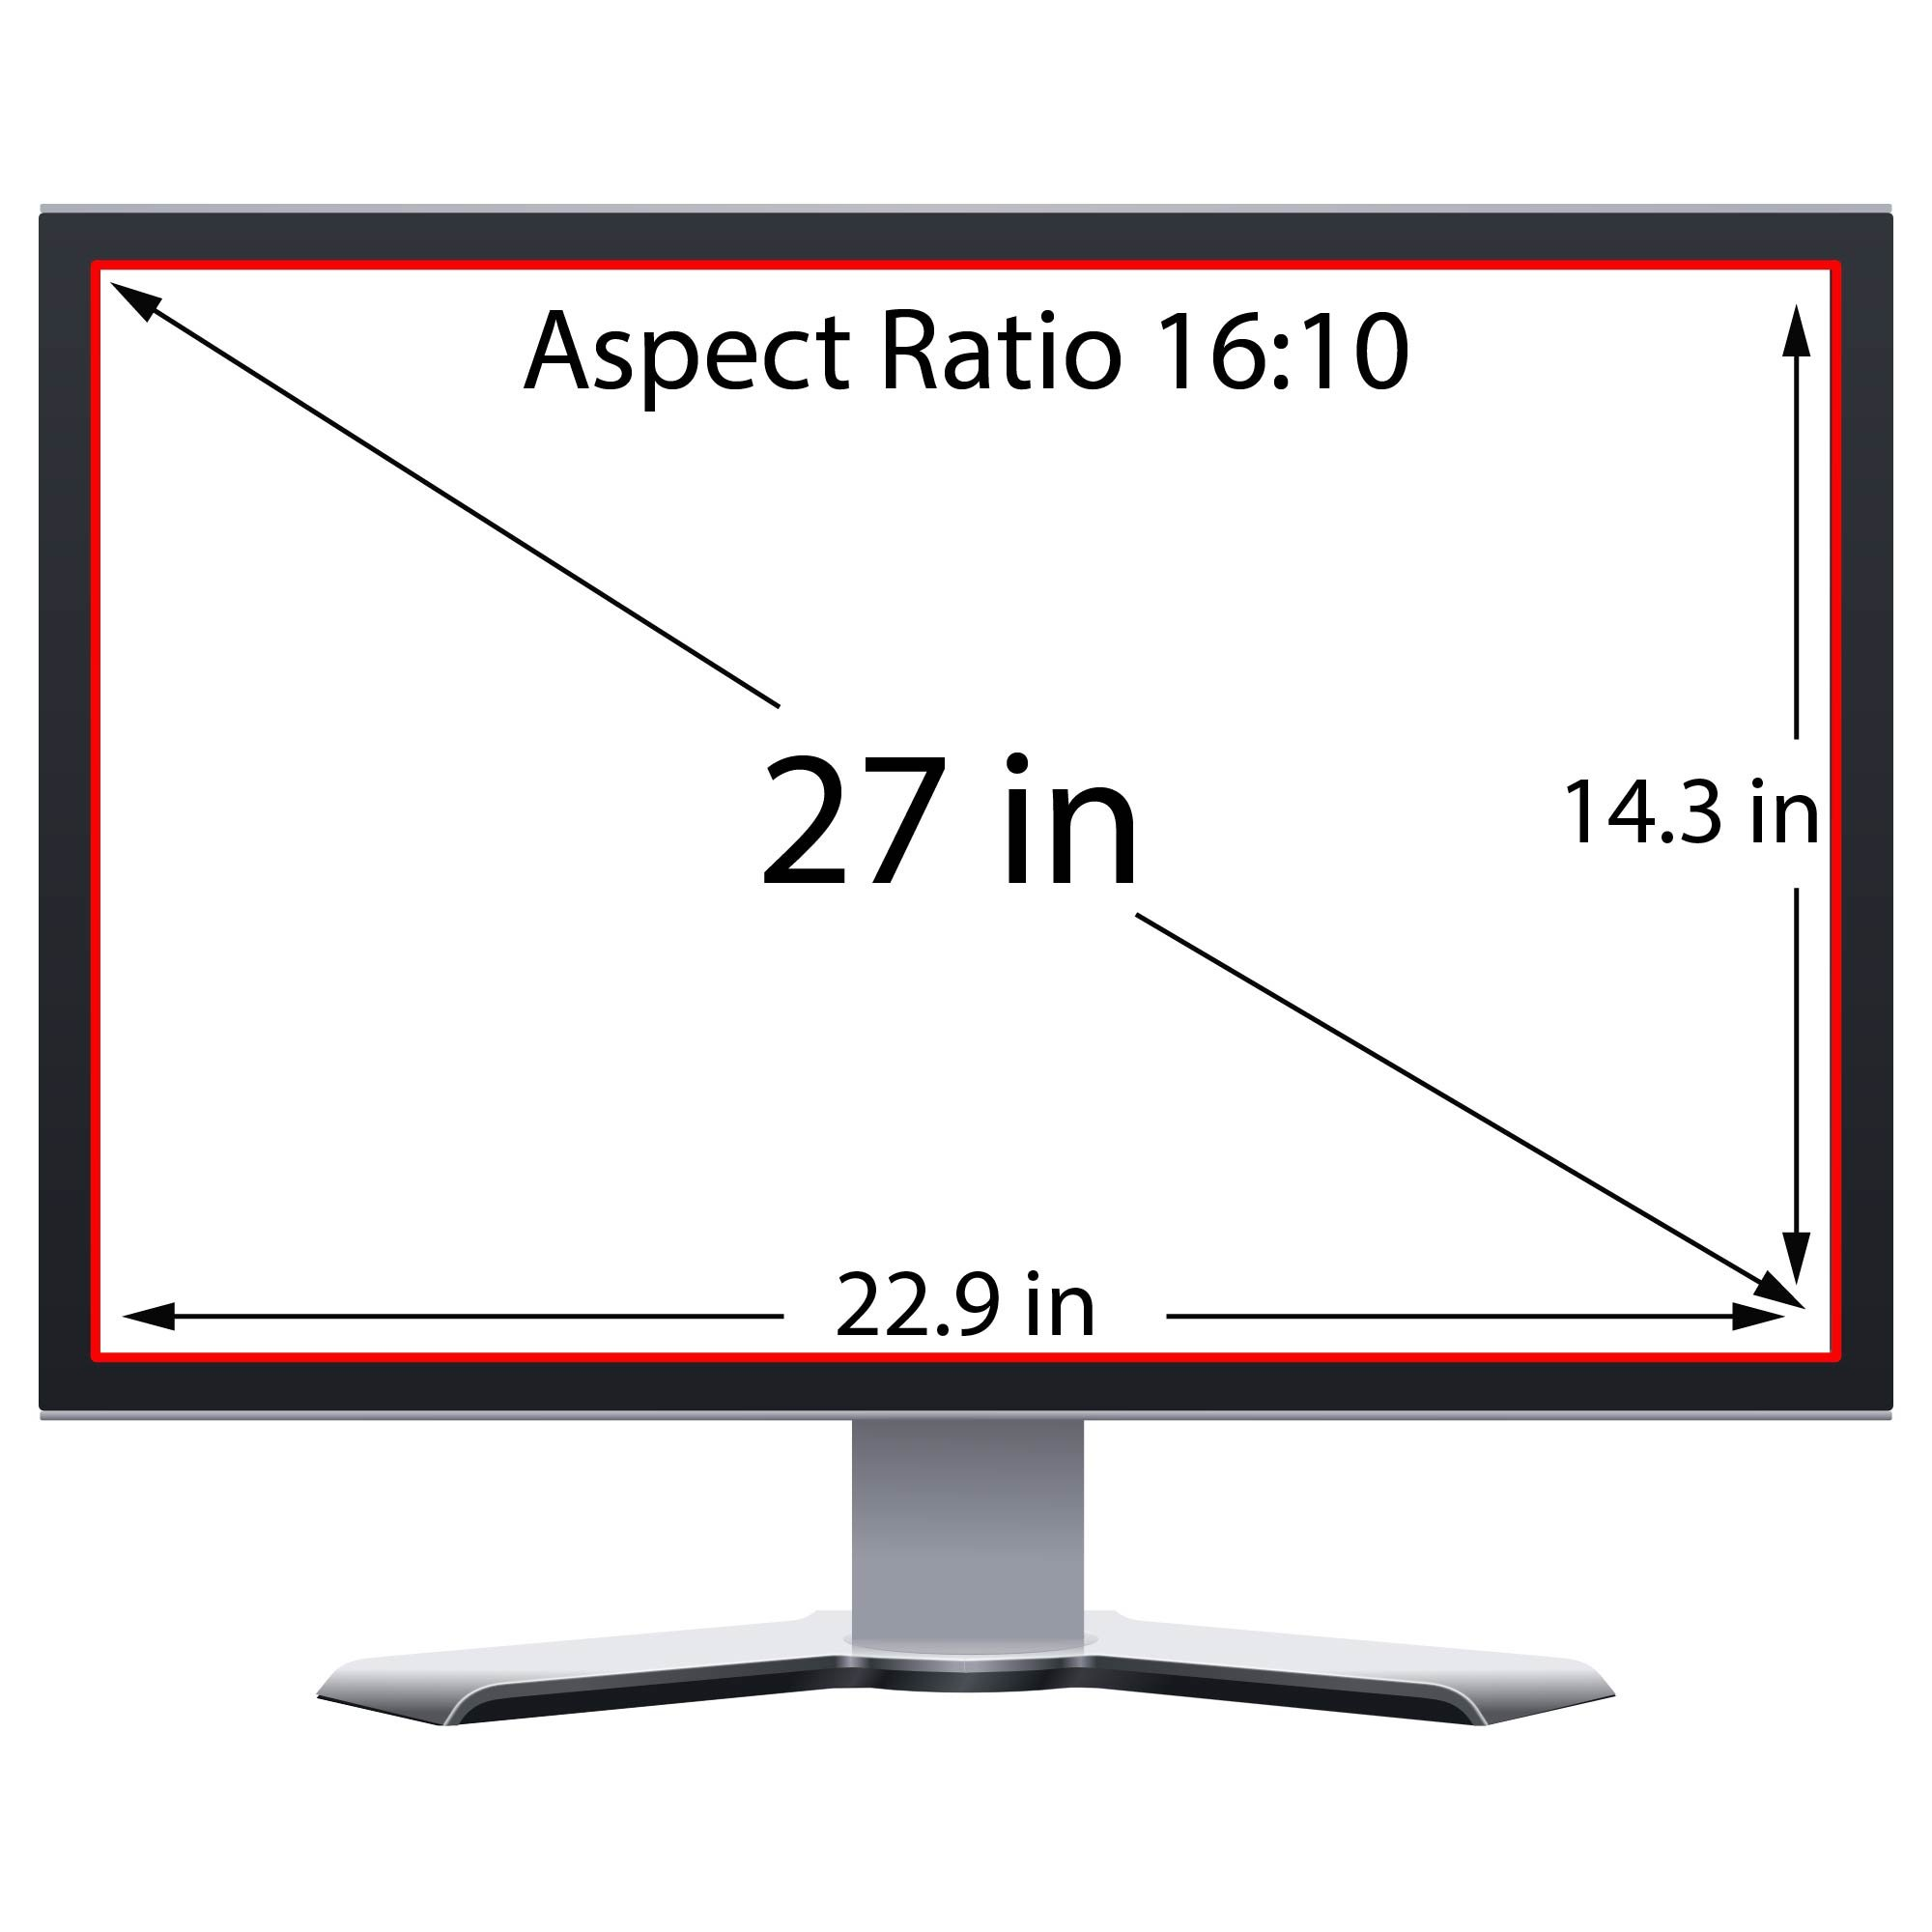 Premium Anti Blue Light and Anti Glare Screen Protector for 27 Inches Laptop with Aspect Ratio 16:09 by WS SCREEN PROTECTOR (Image #7)